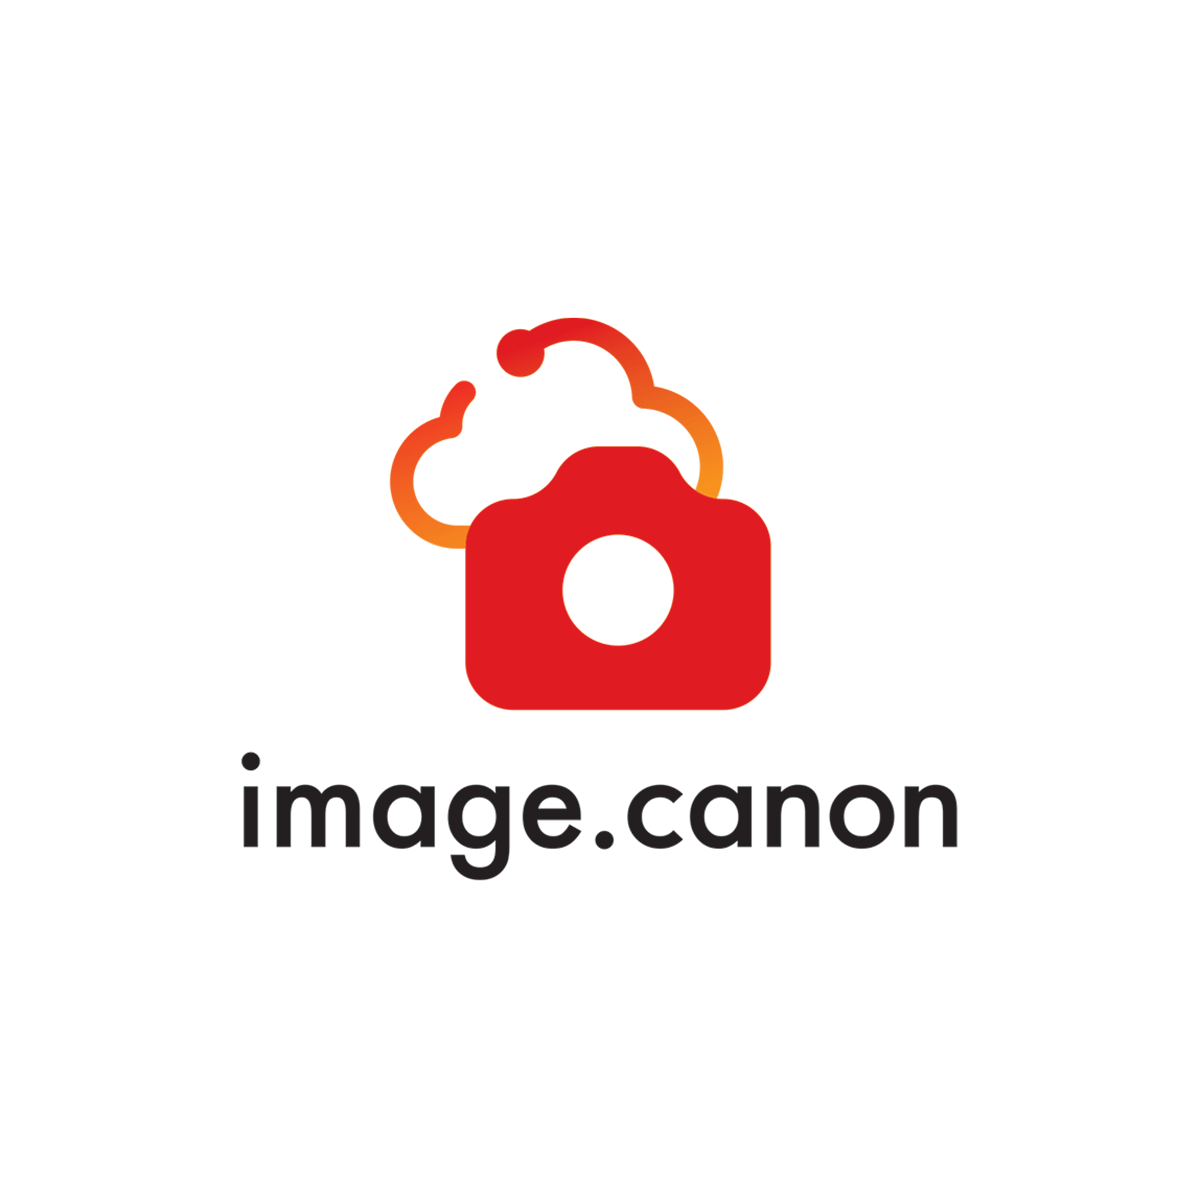 Logo of image.canon